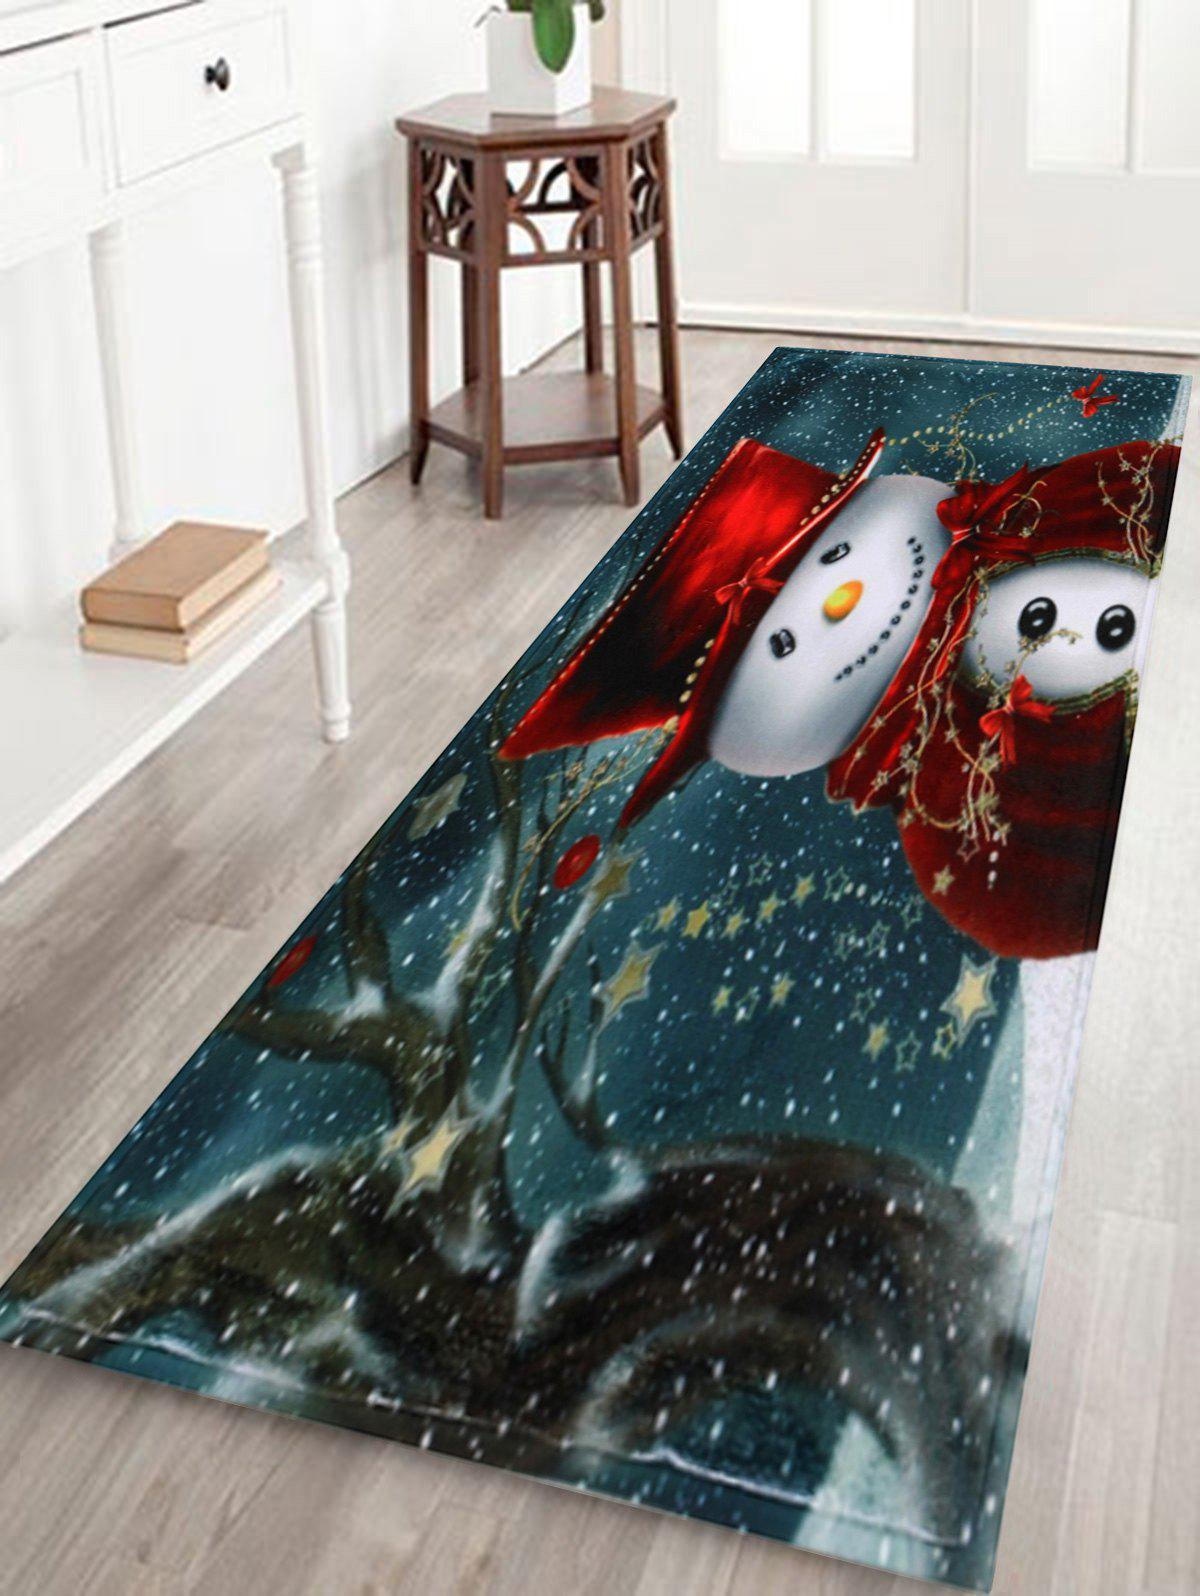 Skidproof Christmas Snowman Print Bath Mat - COLORMIX W16 INCH * L47 INCH